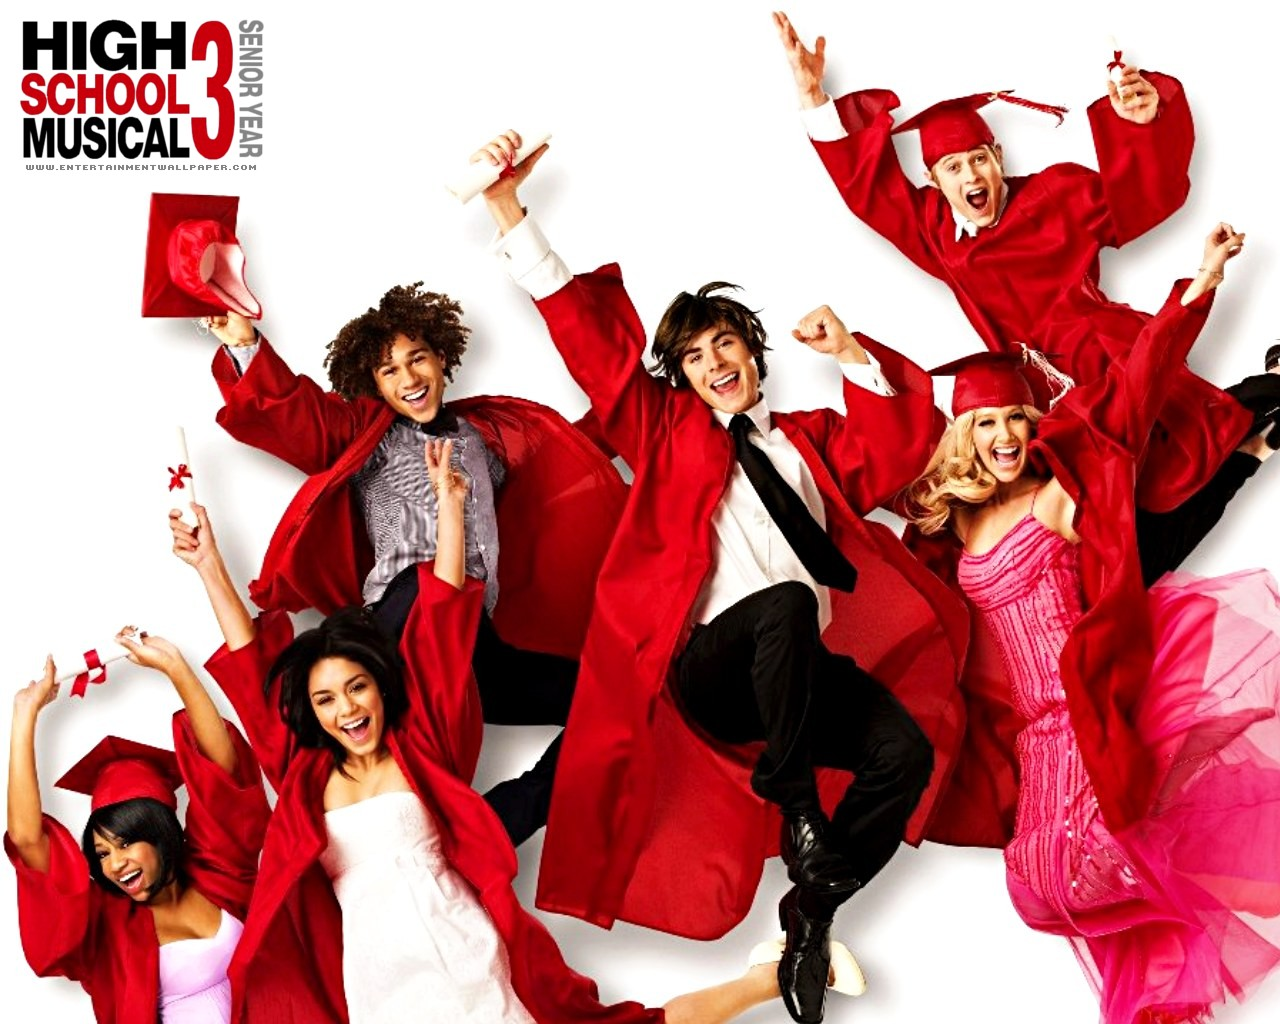 http://1.bp.blogspot.com/-5w60rV-7OHQ/ThOkzH8H3vI/AAAAAAAAAA8/hjaDlPhiy1g/s1600/high_school_musical_3_wallpaper.jpg